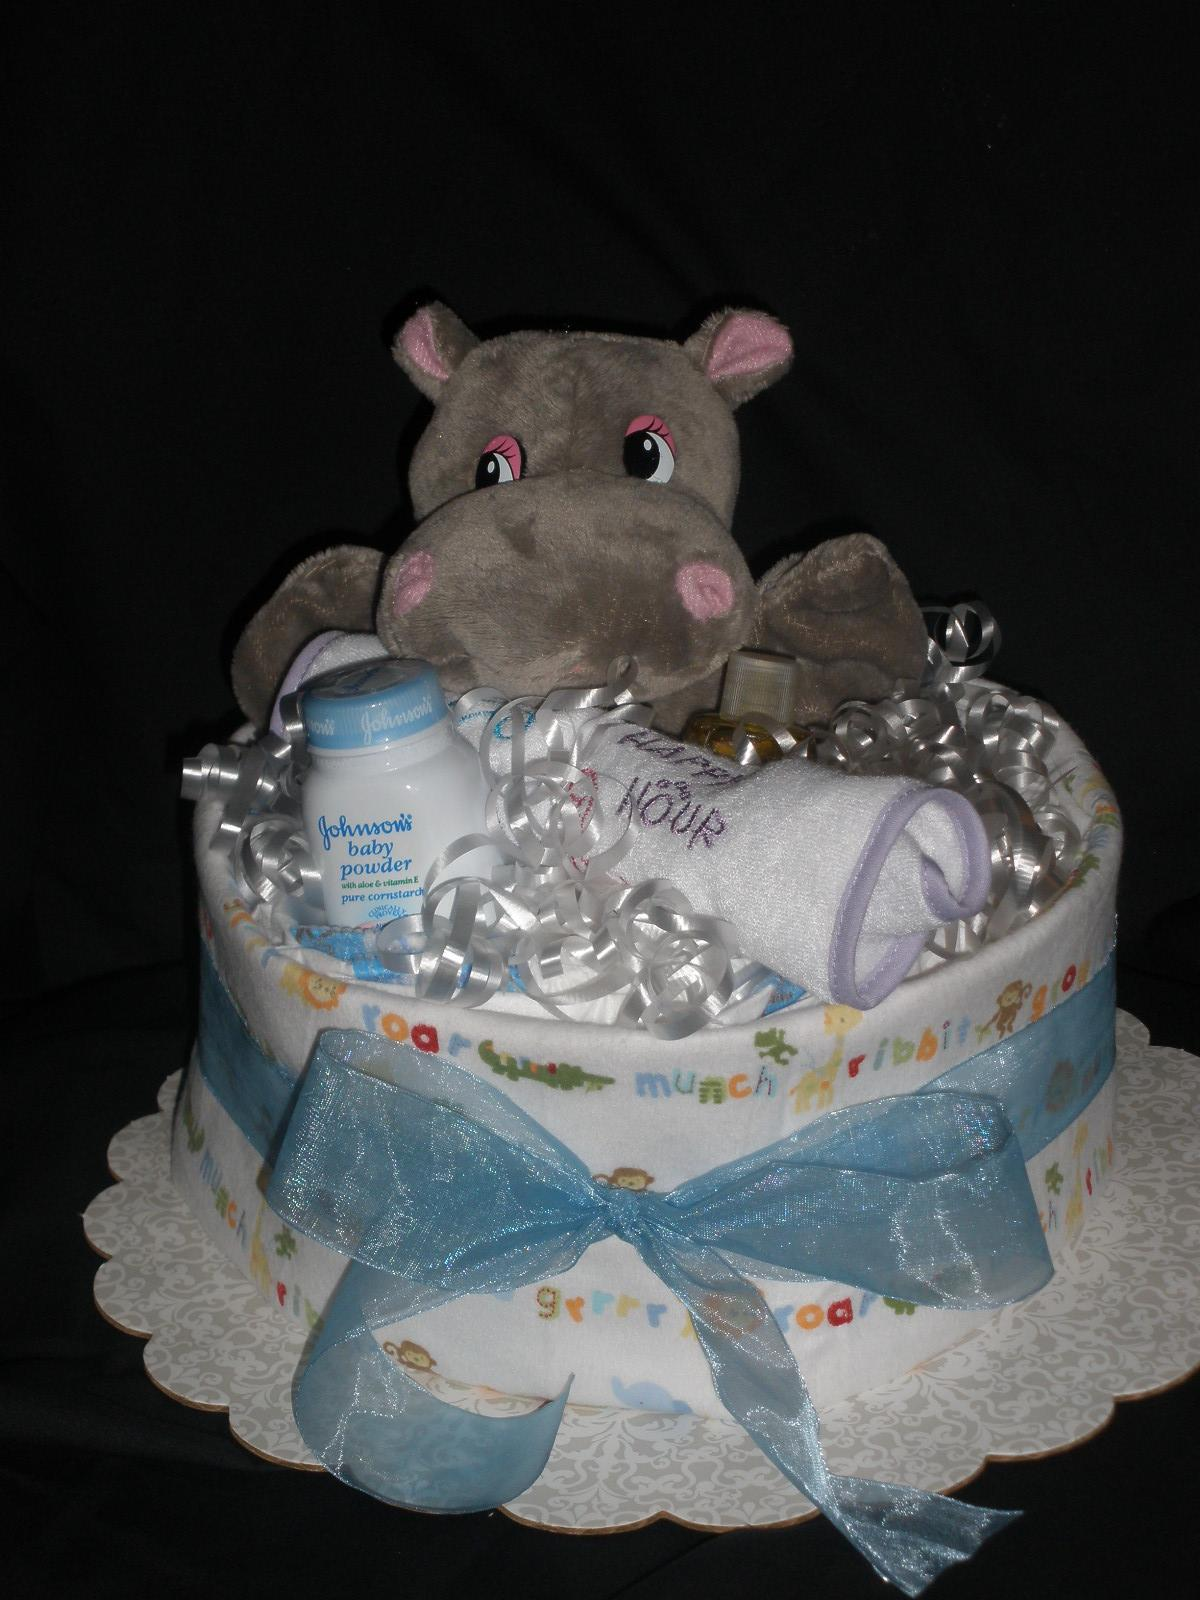 Hippo hand puppet12 size 1-2 diapers1 Recieving blanket1 Bib1 trial ...